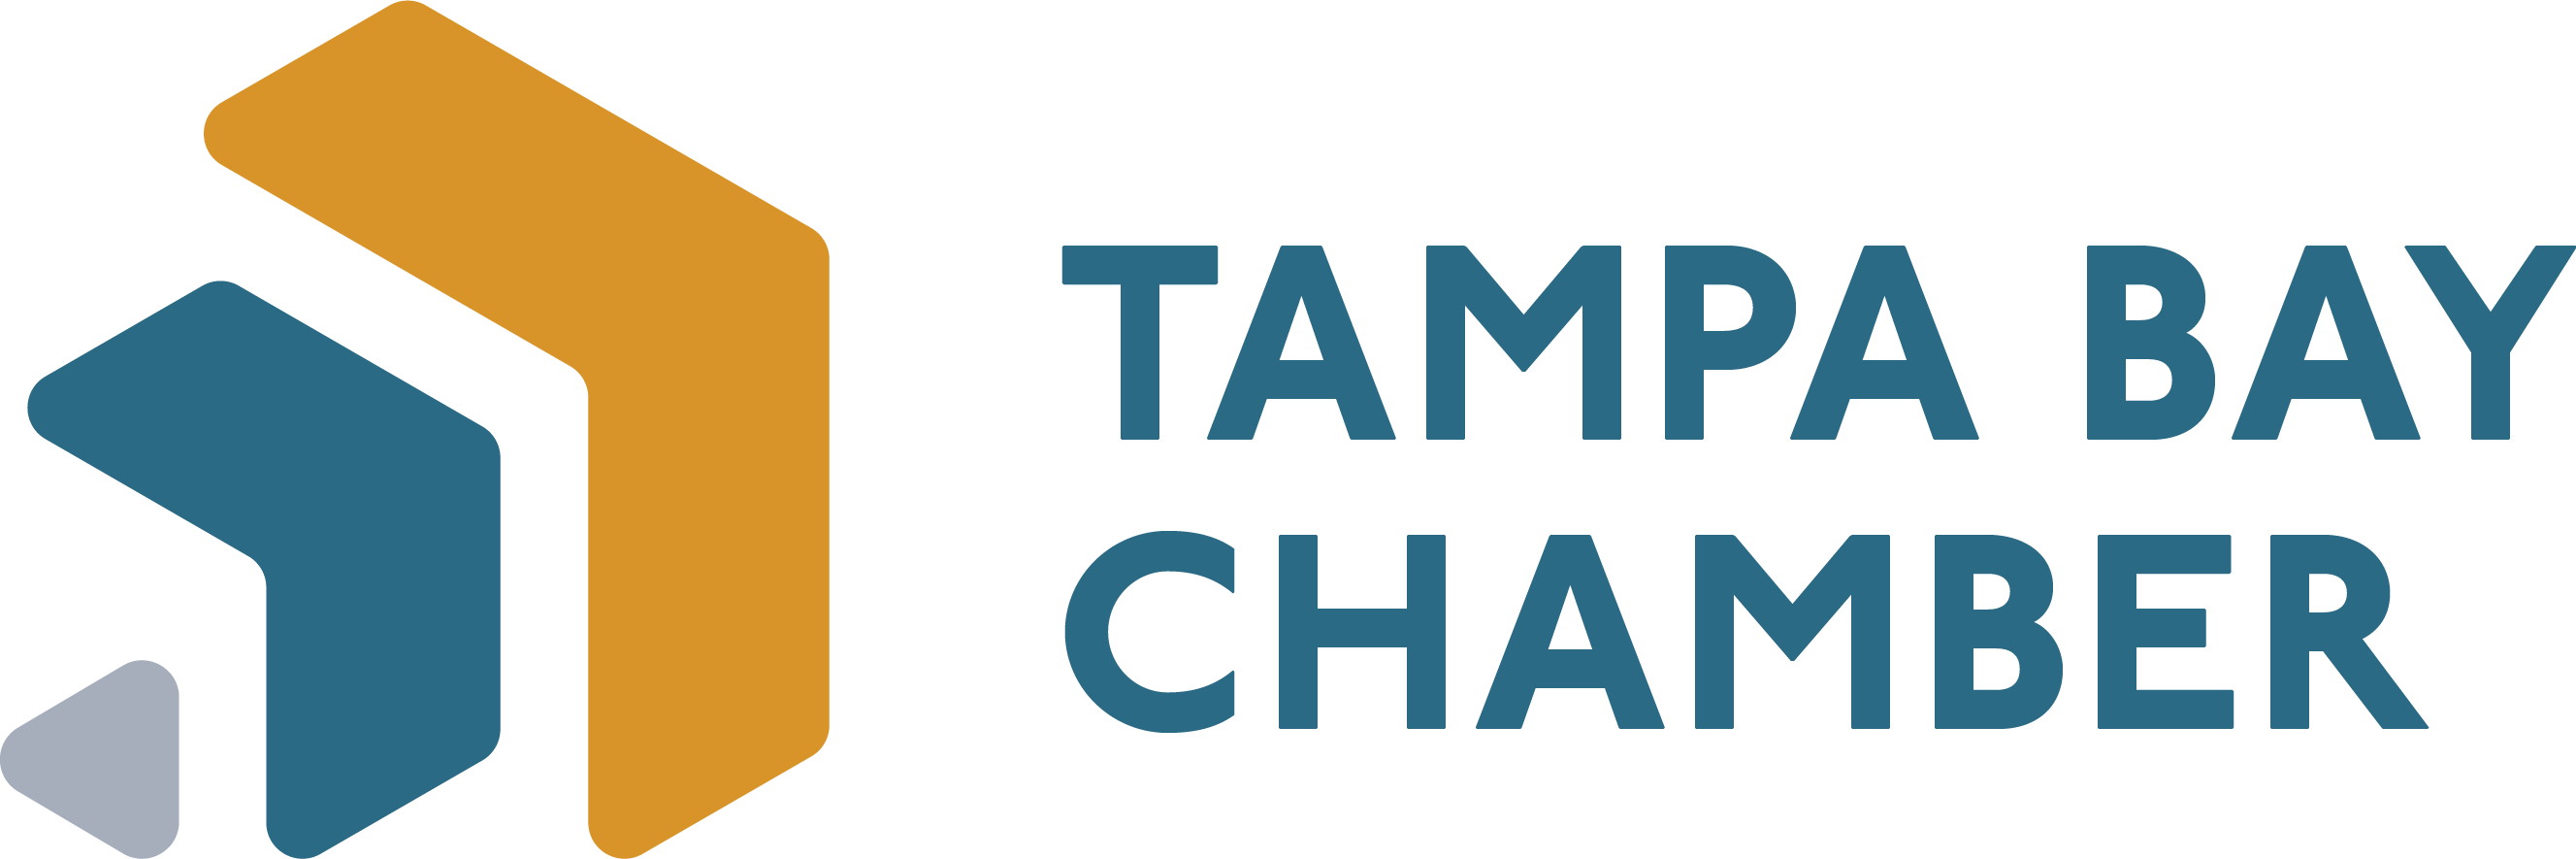 Tampa Bay Chamber-Annual Luncheon logo